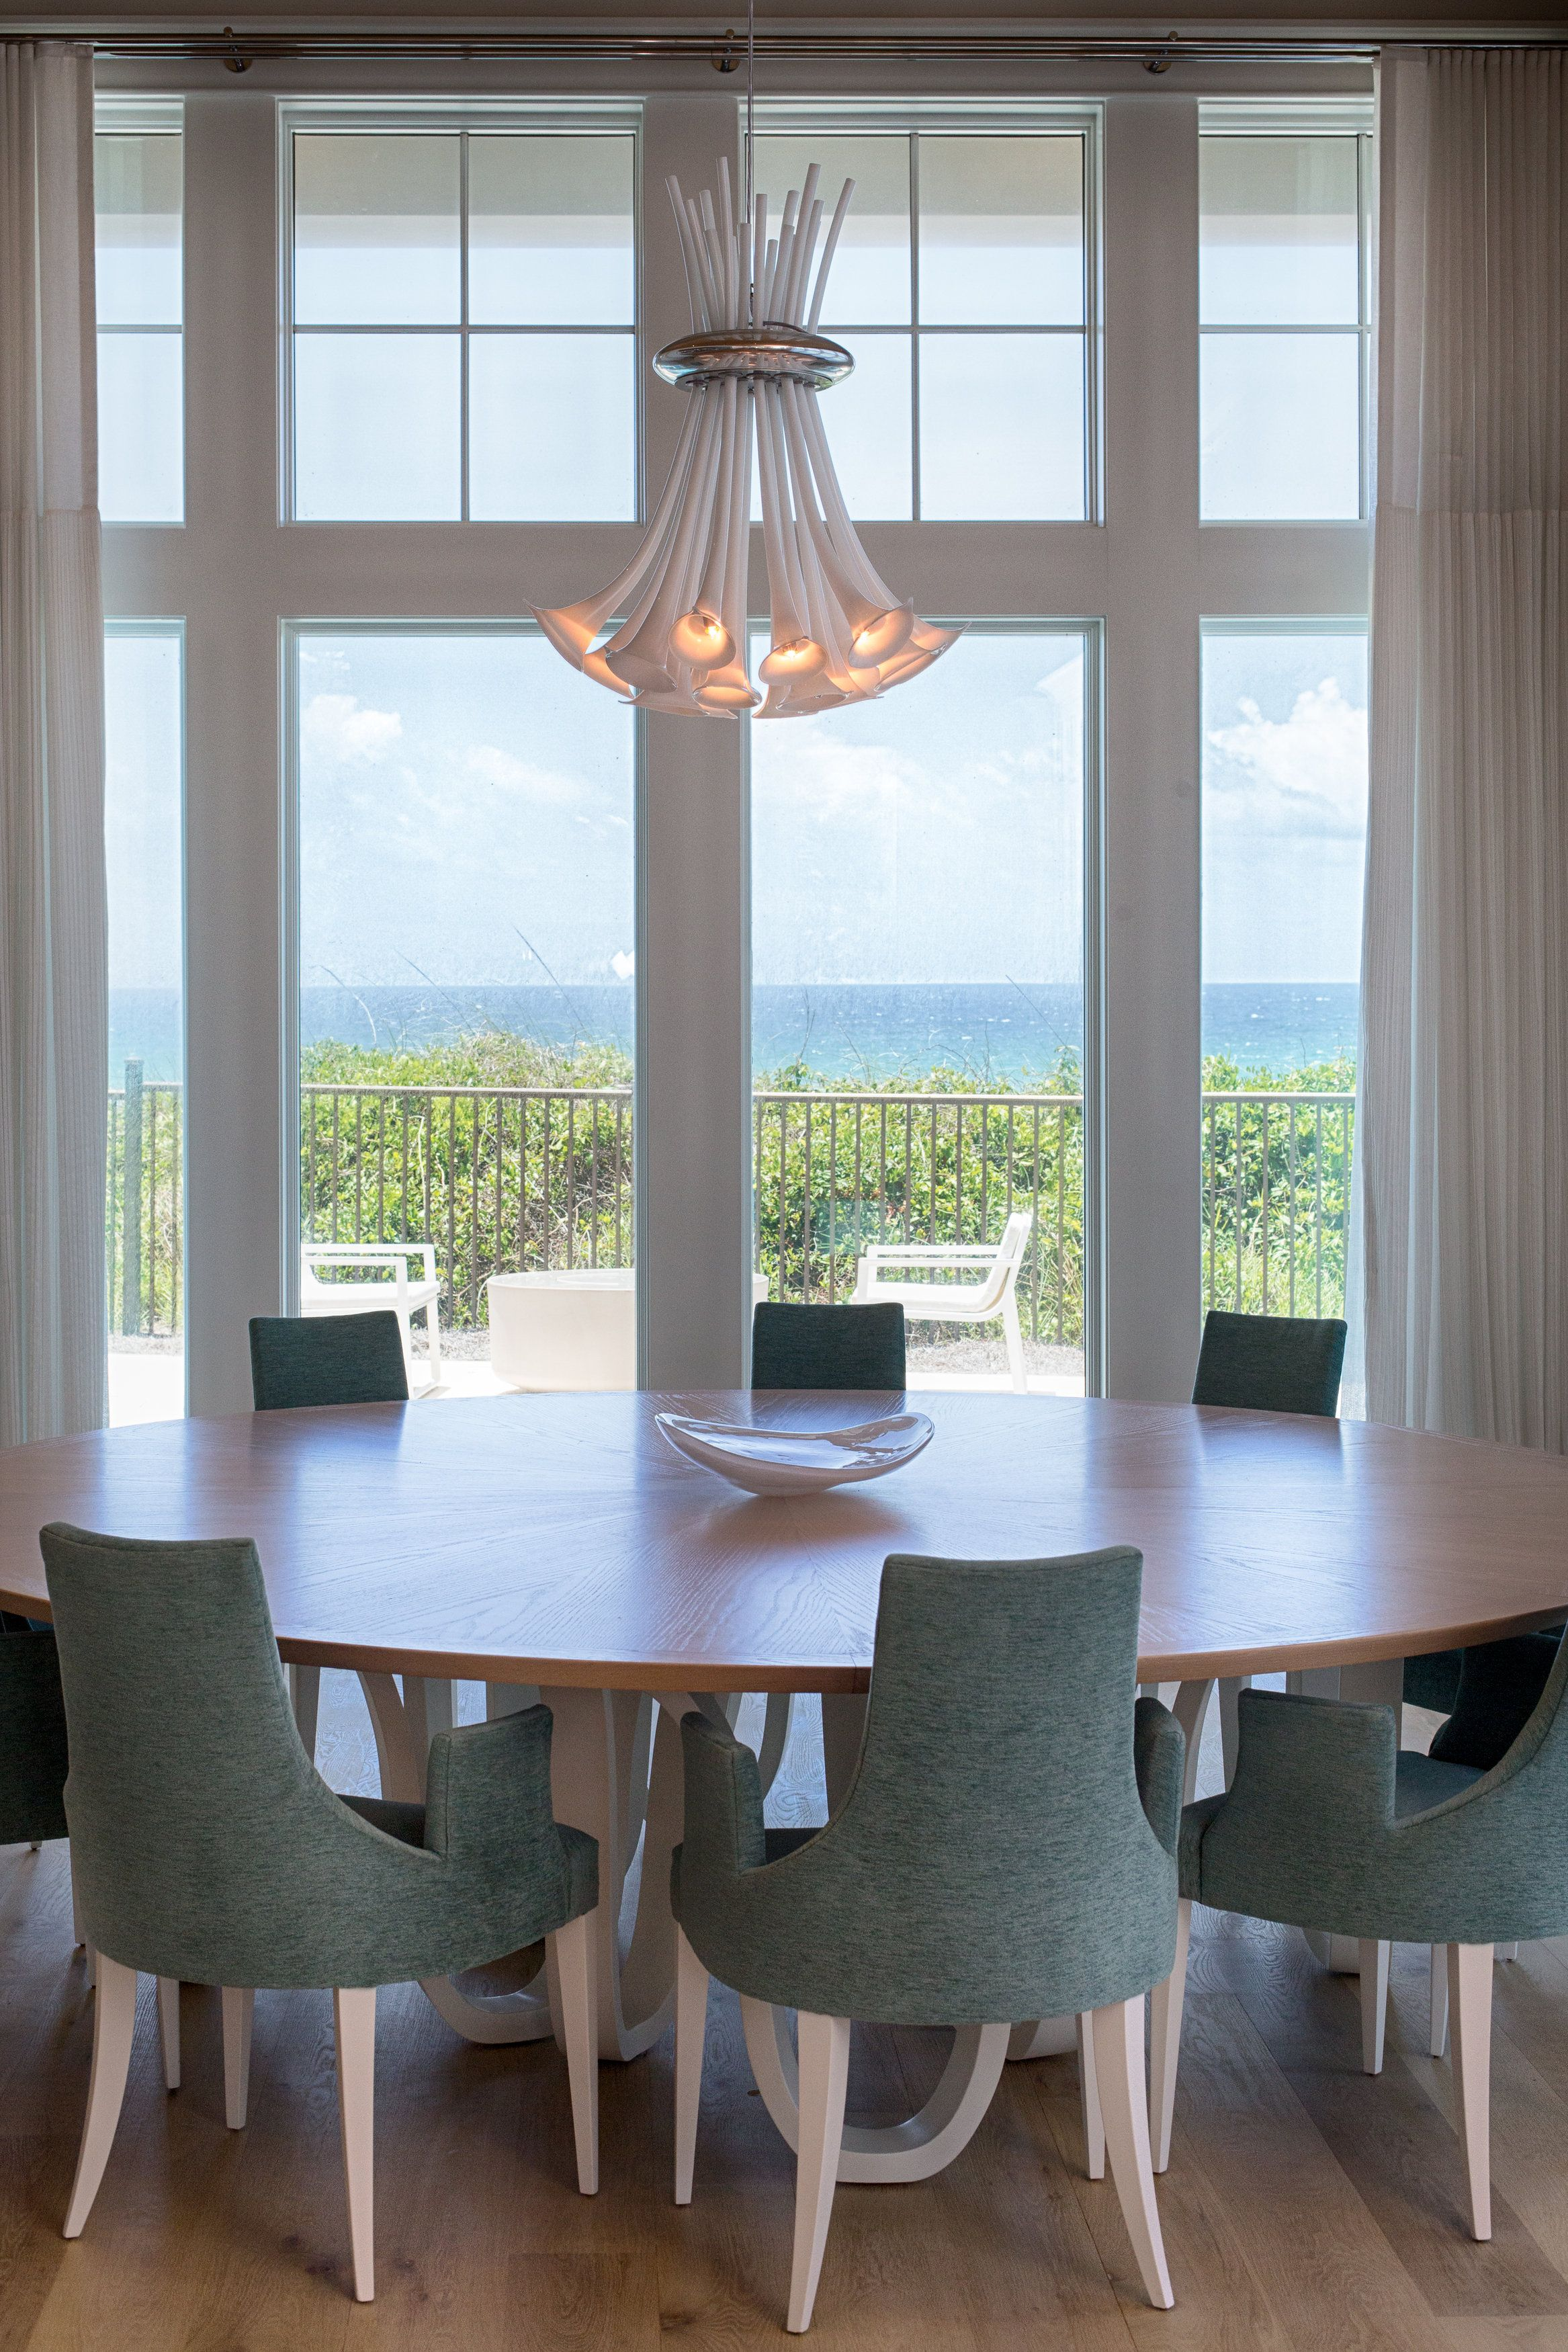 Roundtable Overlooking The Ocean With An Artsy Chandelier Overhead Architect A BOHEME Design Aboheme Follow Us On Instagram Abohemedesign